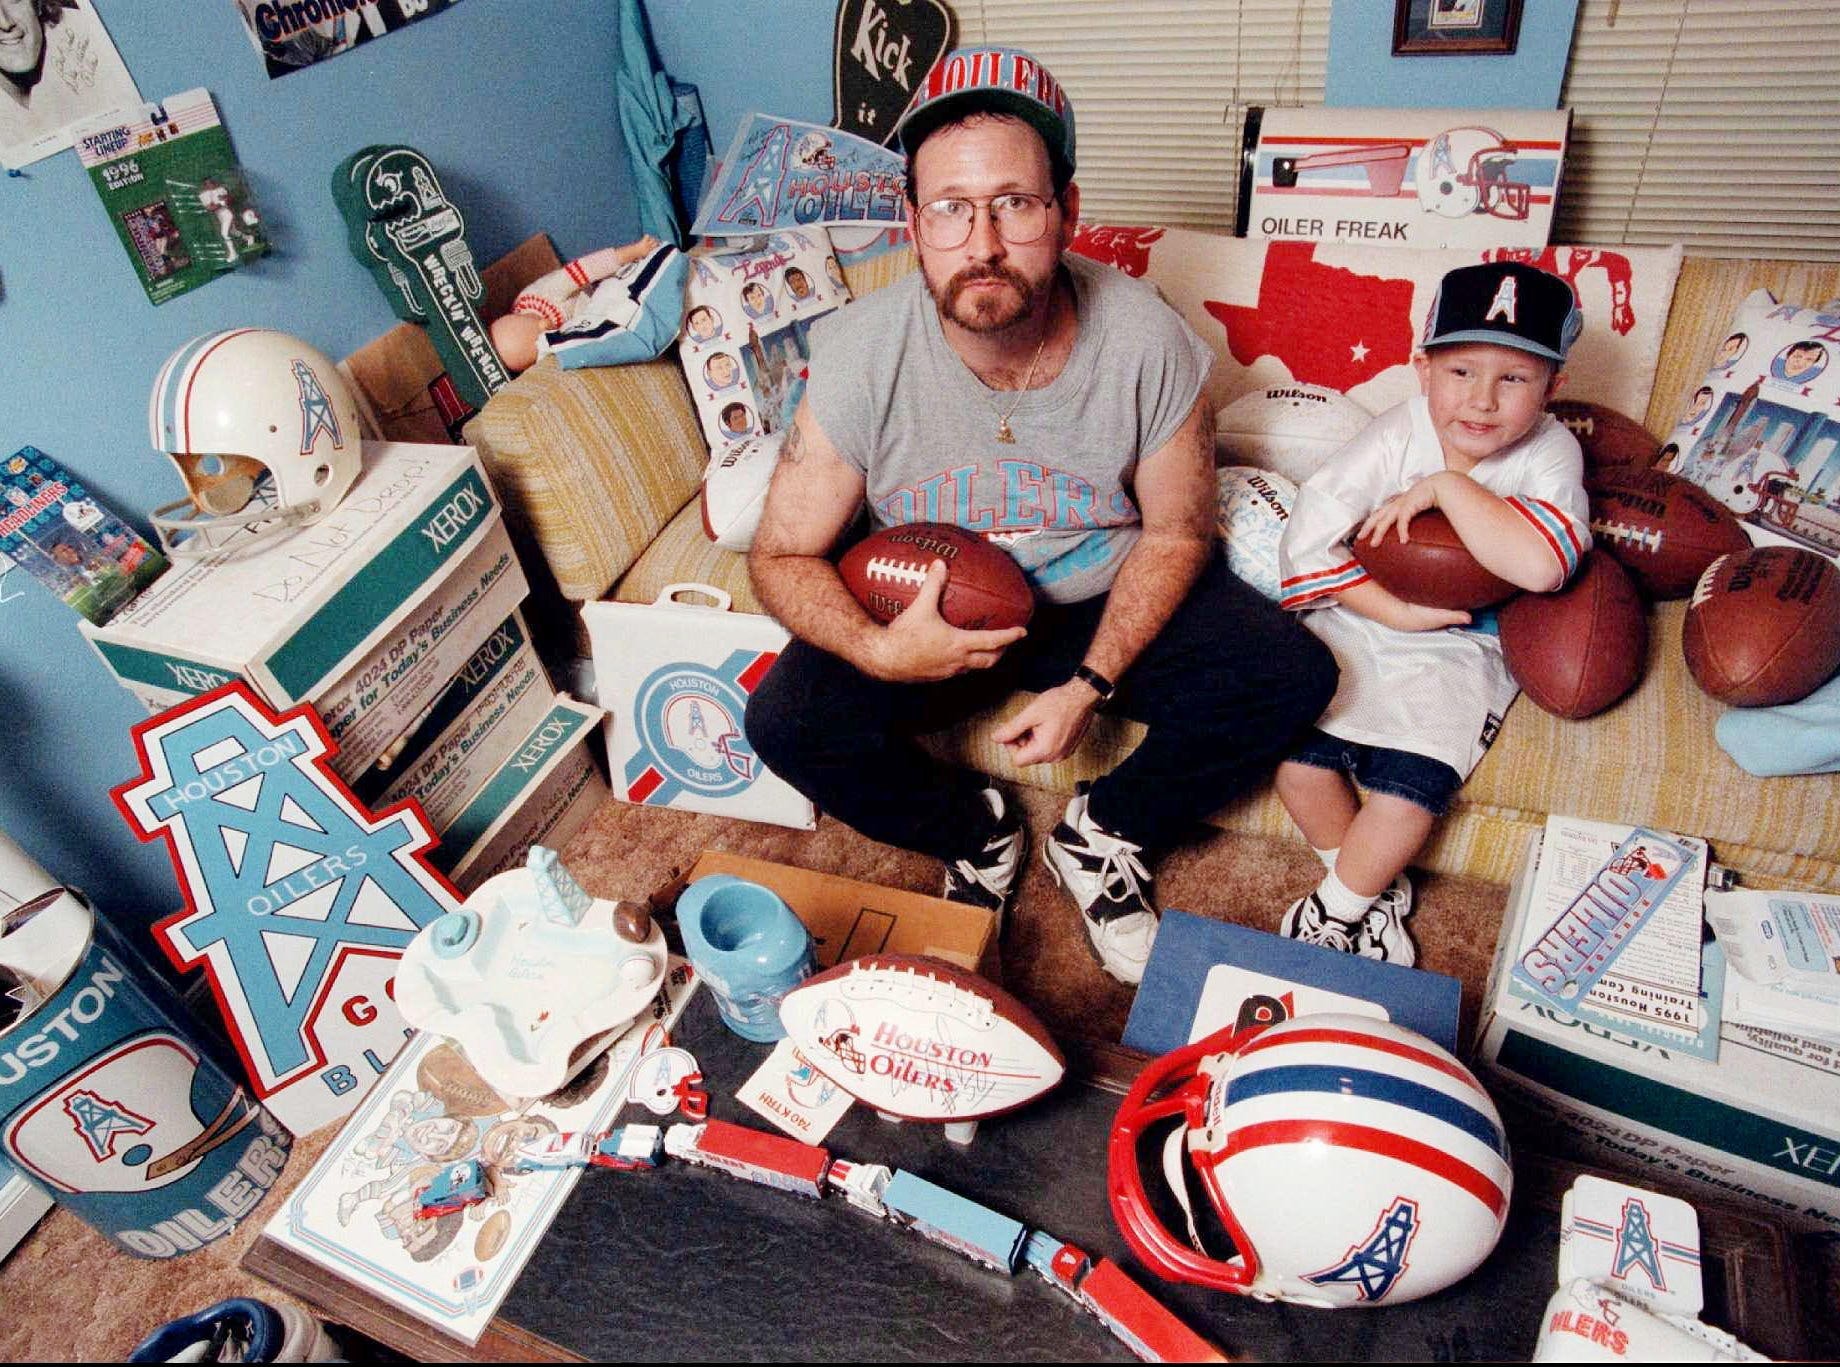 Chris Lockridge, left, holding on to a football used in the last game played by the Houston Oilers in Houston, and his 5-year-old son Derrick, named after the drilling platform logo of the Oilers, sit in the blue room of their Houston home filled with memorabilia dedicated to the former Houston team Dec. 16, 1997. One season has passed since the Oilers moved to Tennessee.